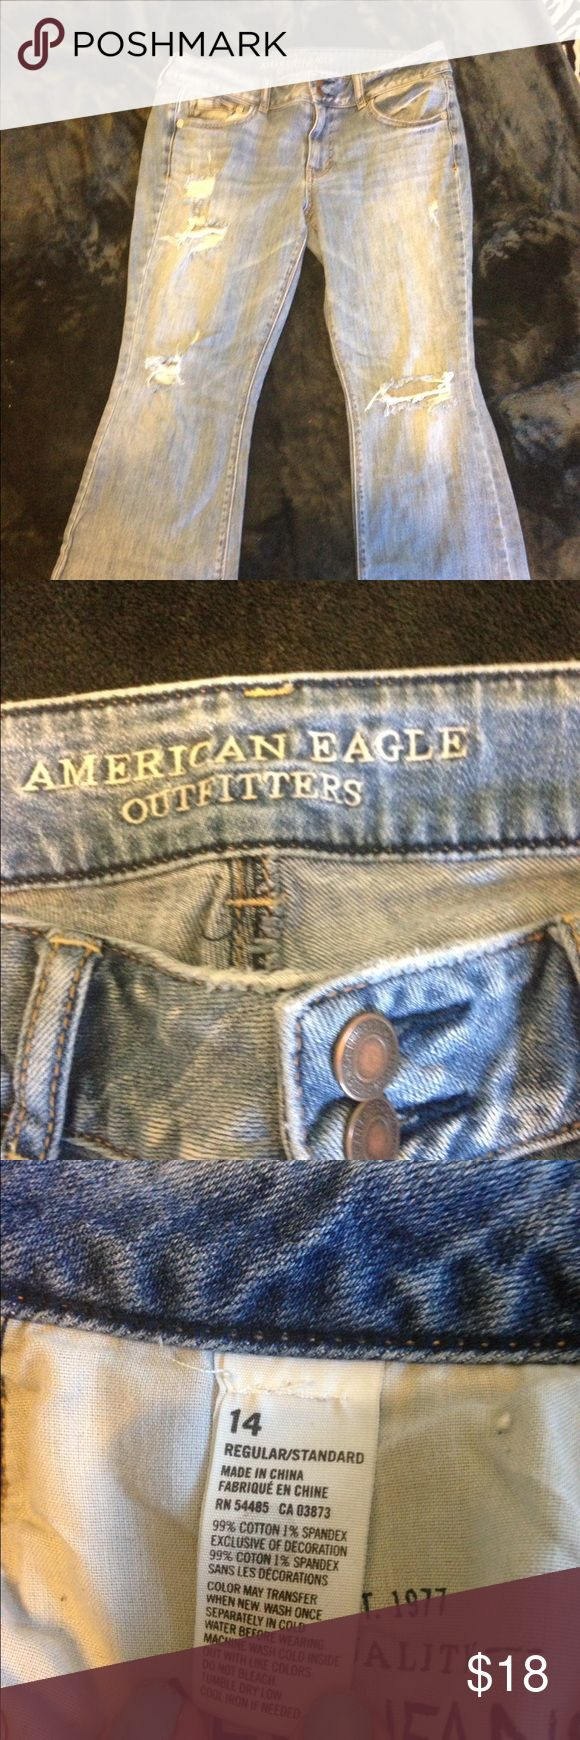 American Eagle Outfitters distressed Artist jeans Discounted shipping for one hour!!!  AEO size 14 distressed artist jeans. Broken in. Awesome. They just don't fit and it is time to let them go. Regular length. Flared leg. American Eagle Outfitters Jeans Flare & Wide Leg